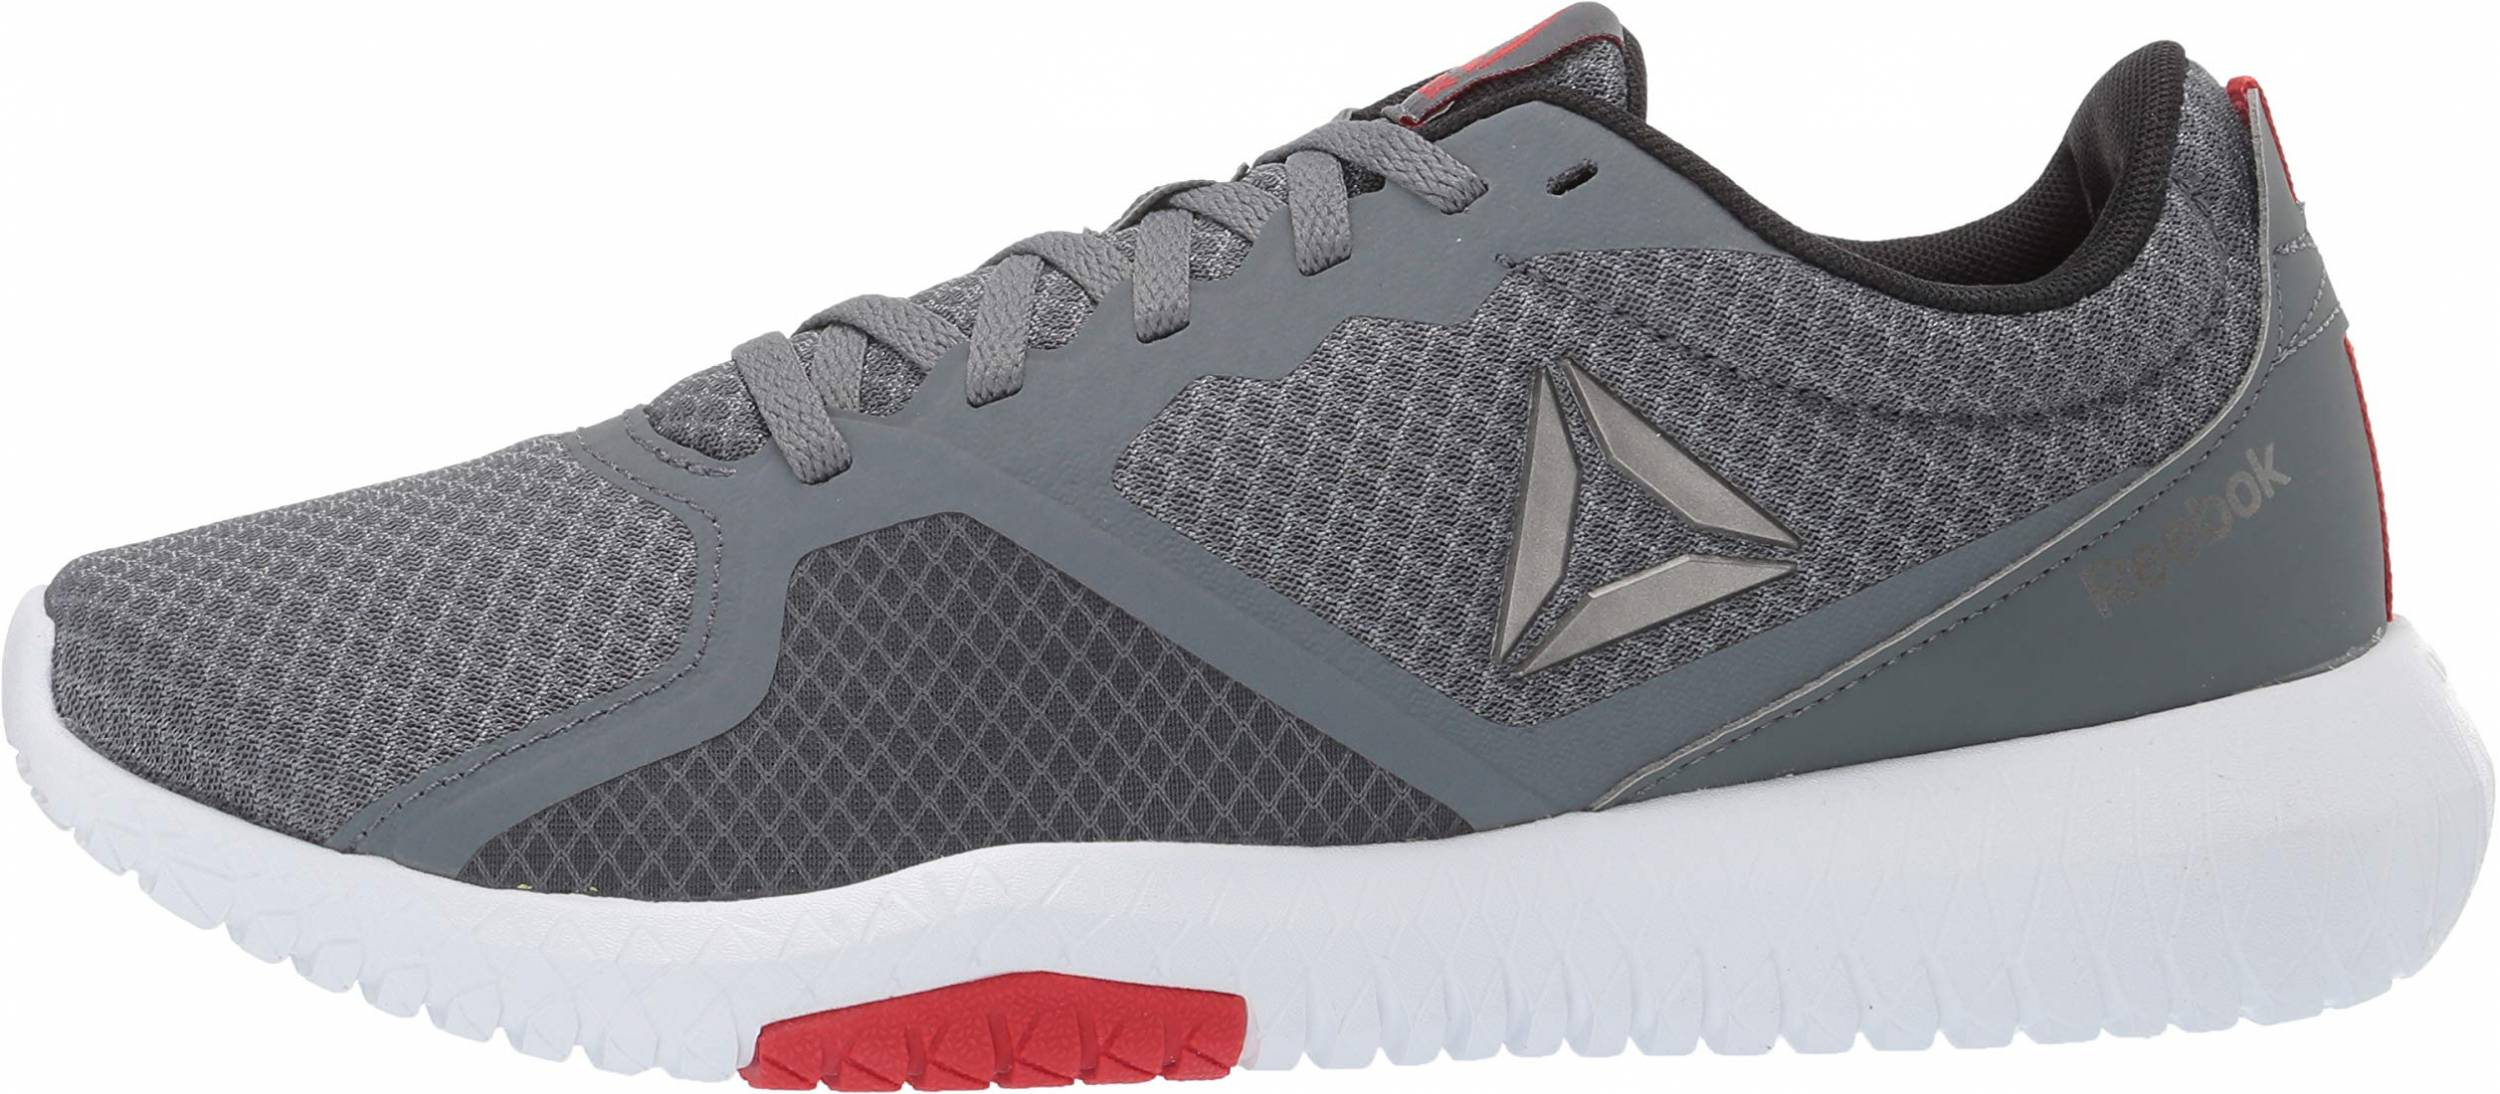 reebok shoes for women with price